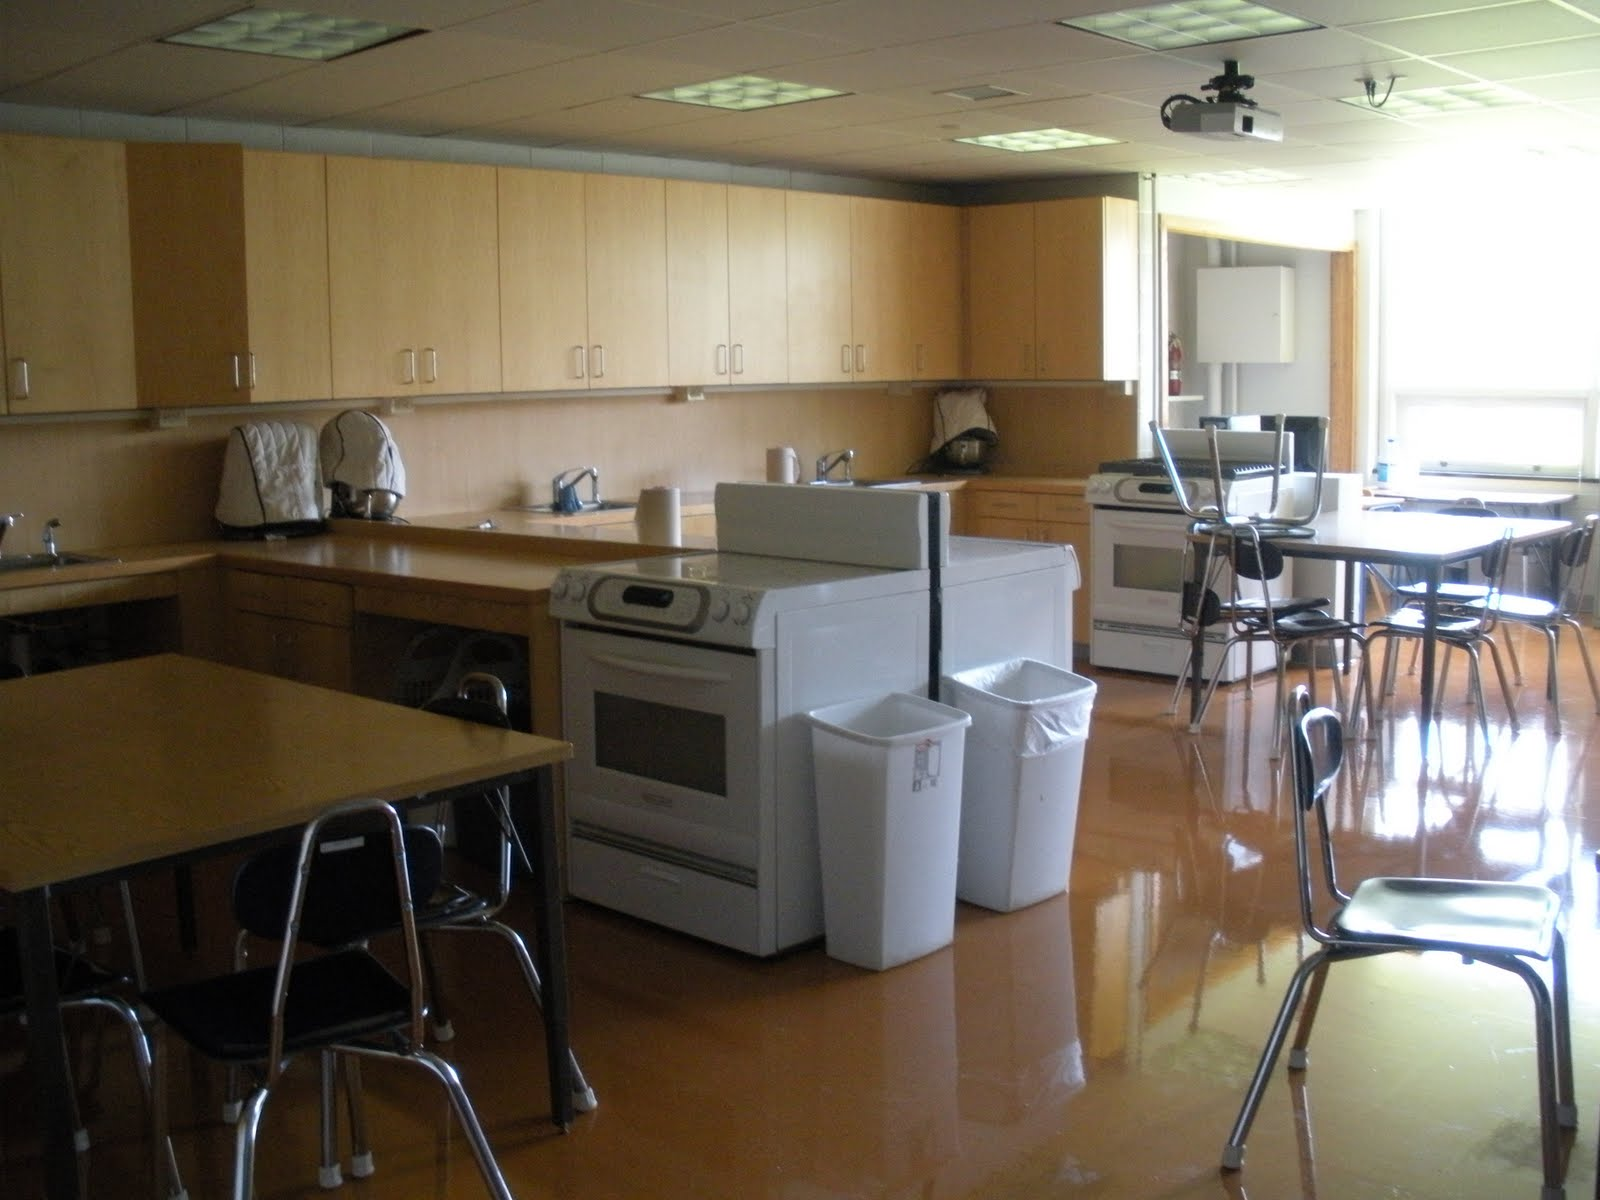 Interior design in home economics - For Some Reason I Was Drawn To The Home Economics Classroom Which Is Now Called A Food Lab It Just Looked So Warm And Inviting